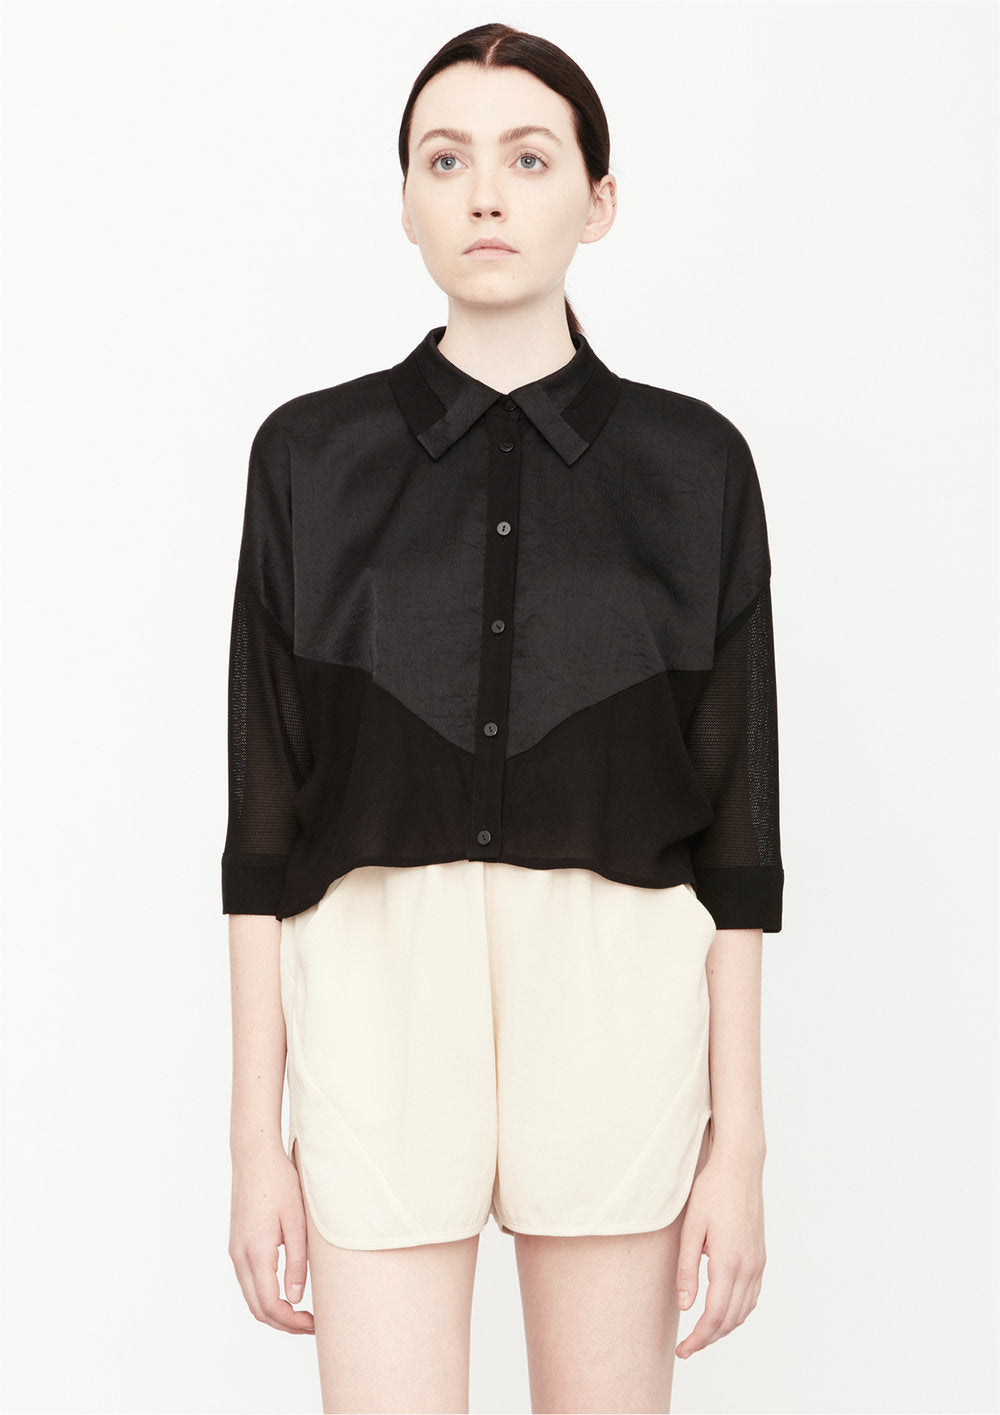 BLOUSE SHORT SLEEVES - SHINY/MESH black - BERENIK